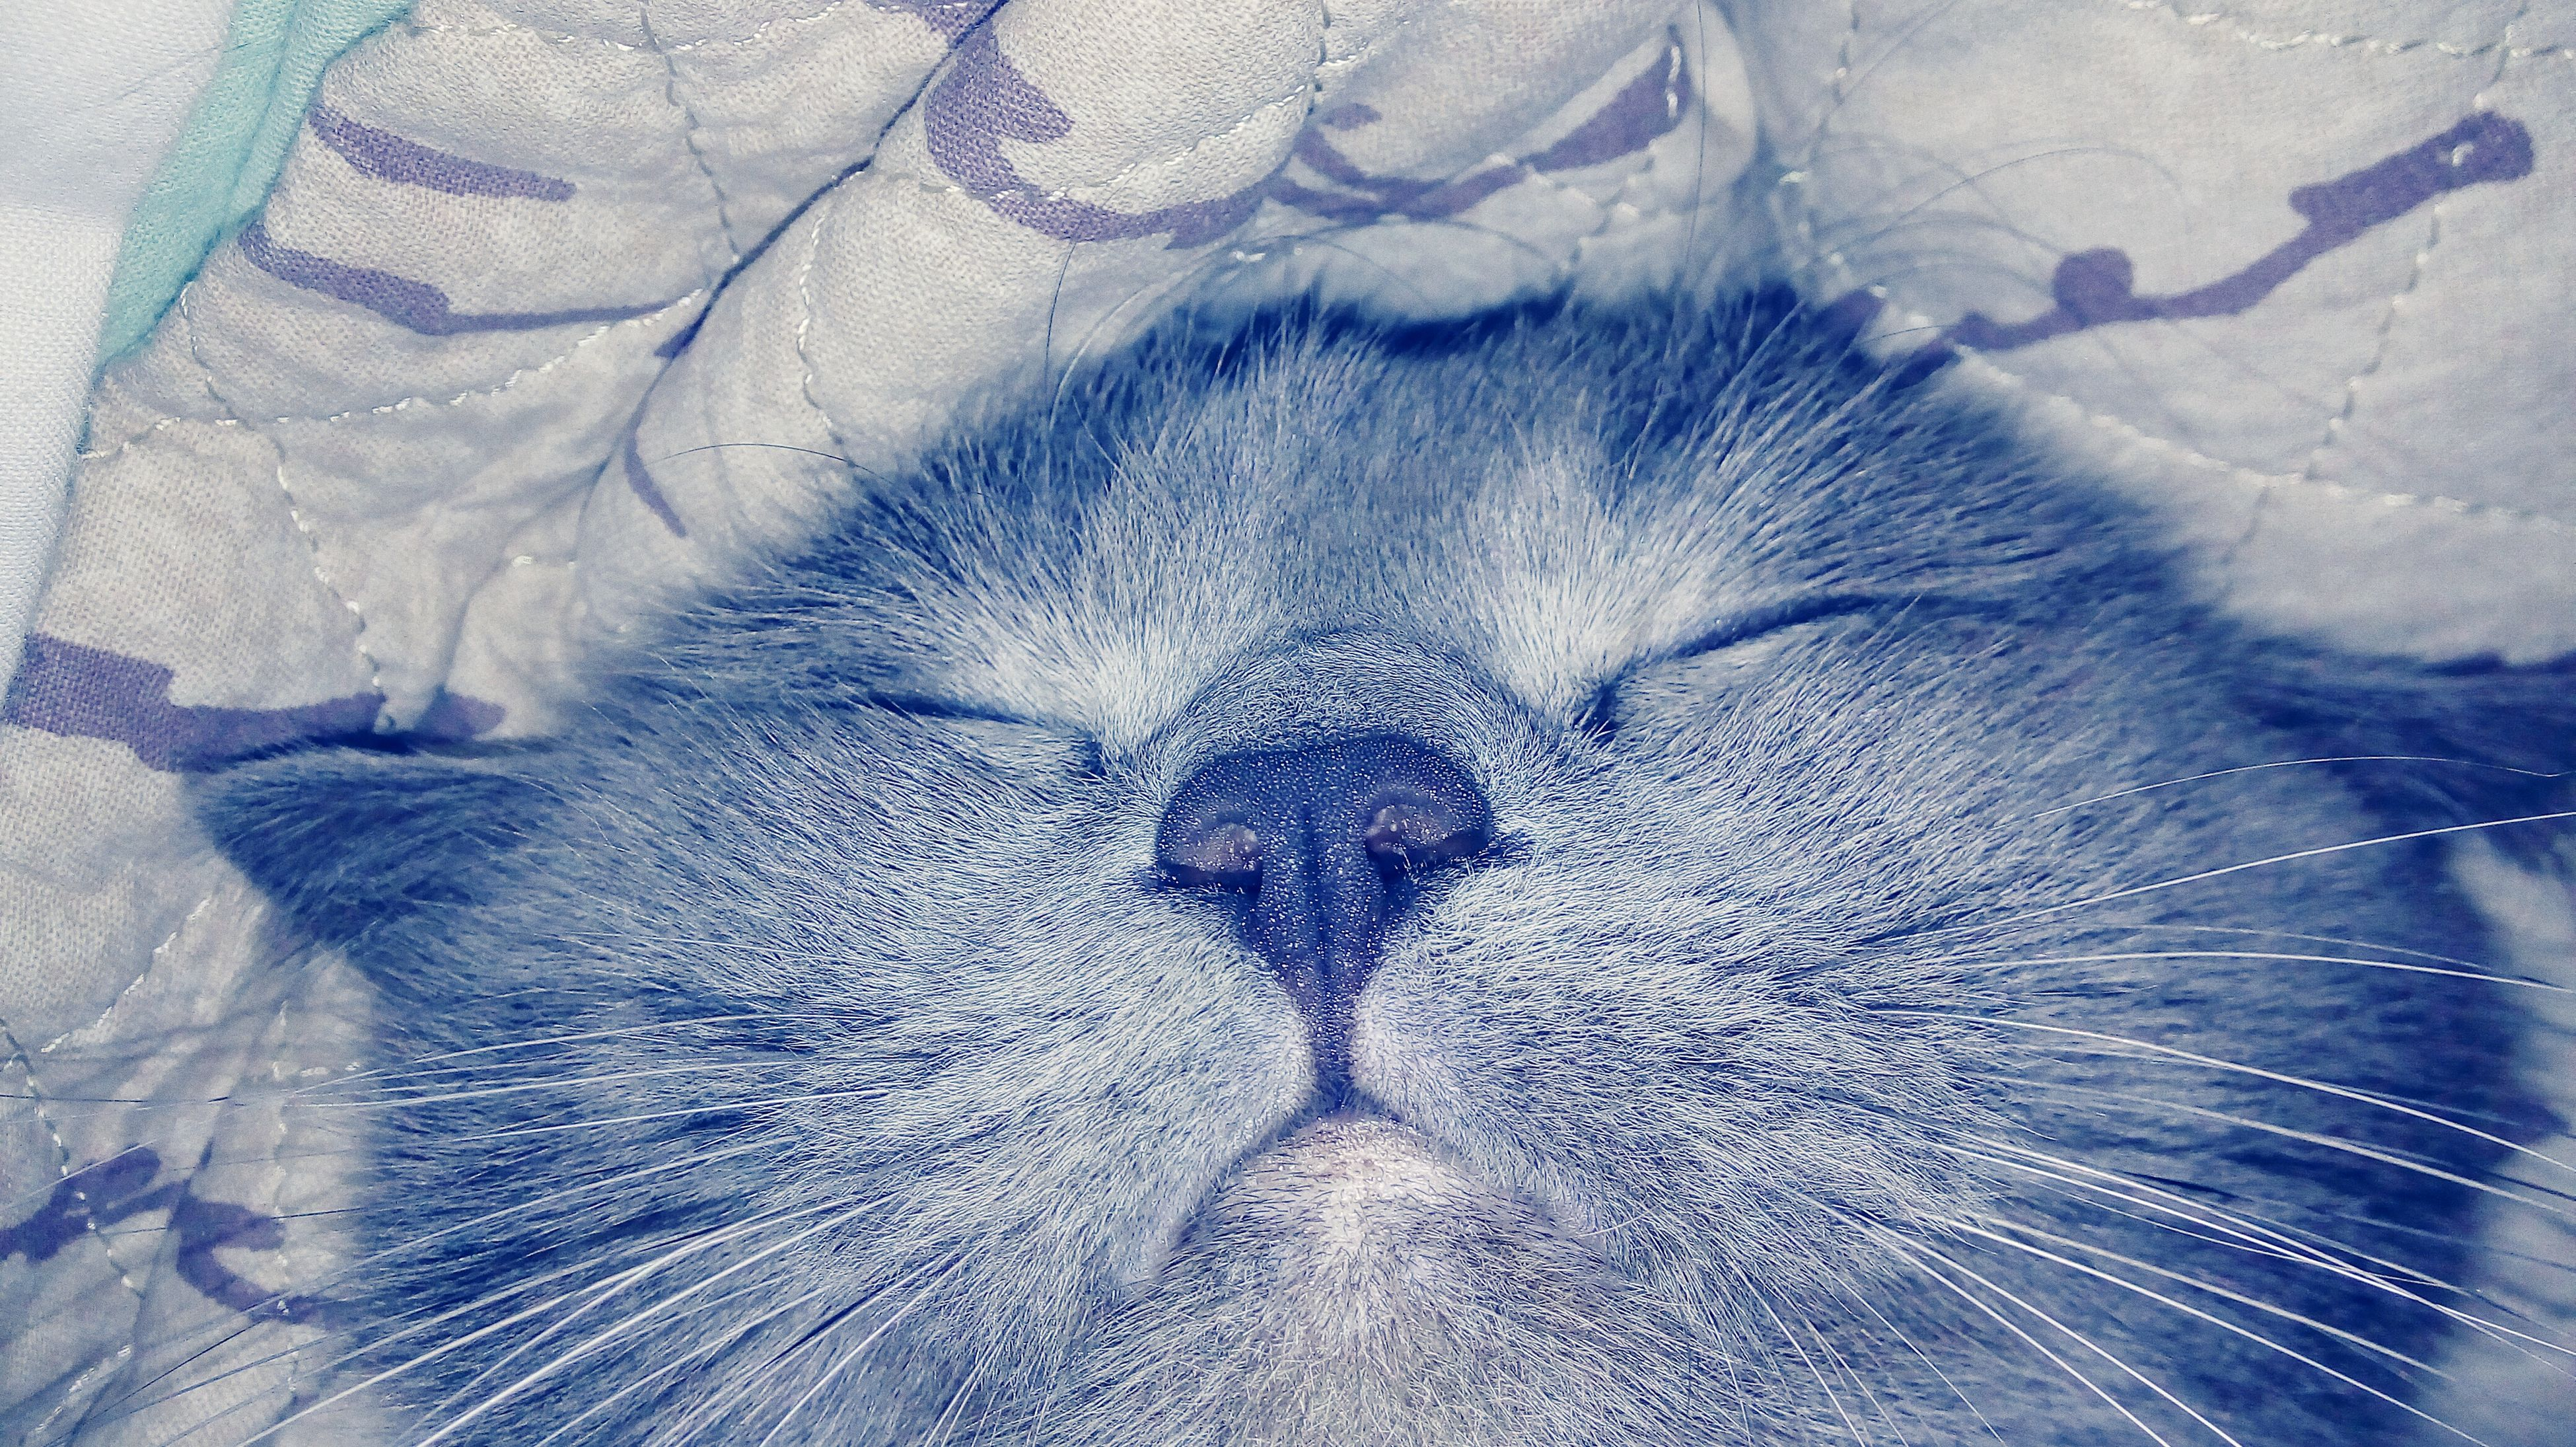 animal themes, one animal, domestic animals, mammal, pets, close-up, high angle view, domestic cat, whisker, wildlife, sleeping, animals in the wild, animal body part, cat, zoology, relaxation, no people, feline, animal head, nature